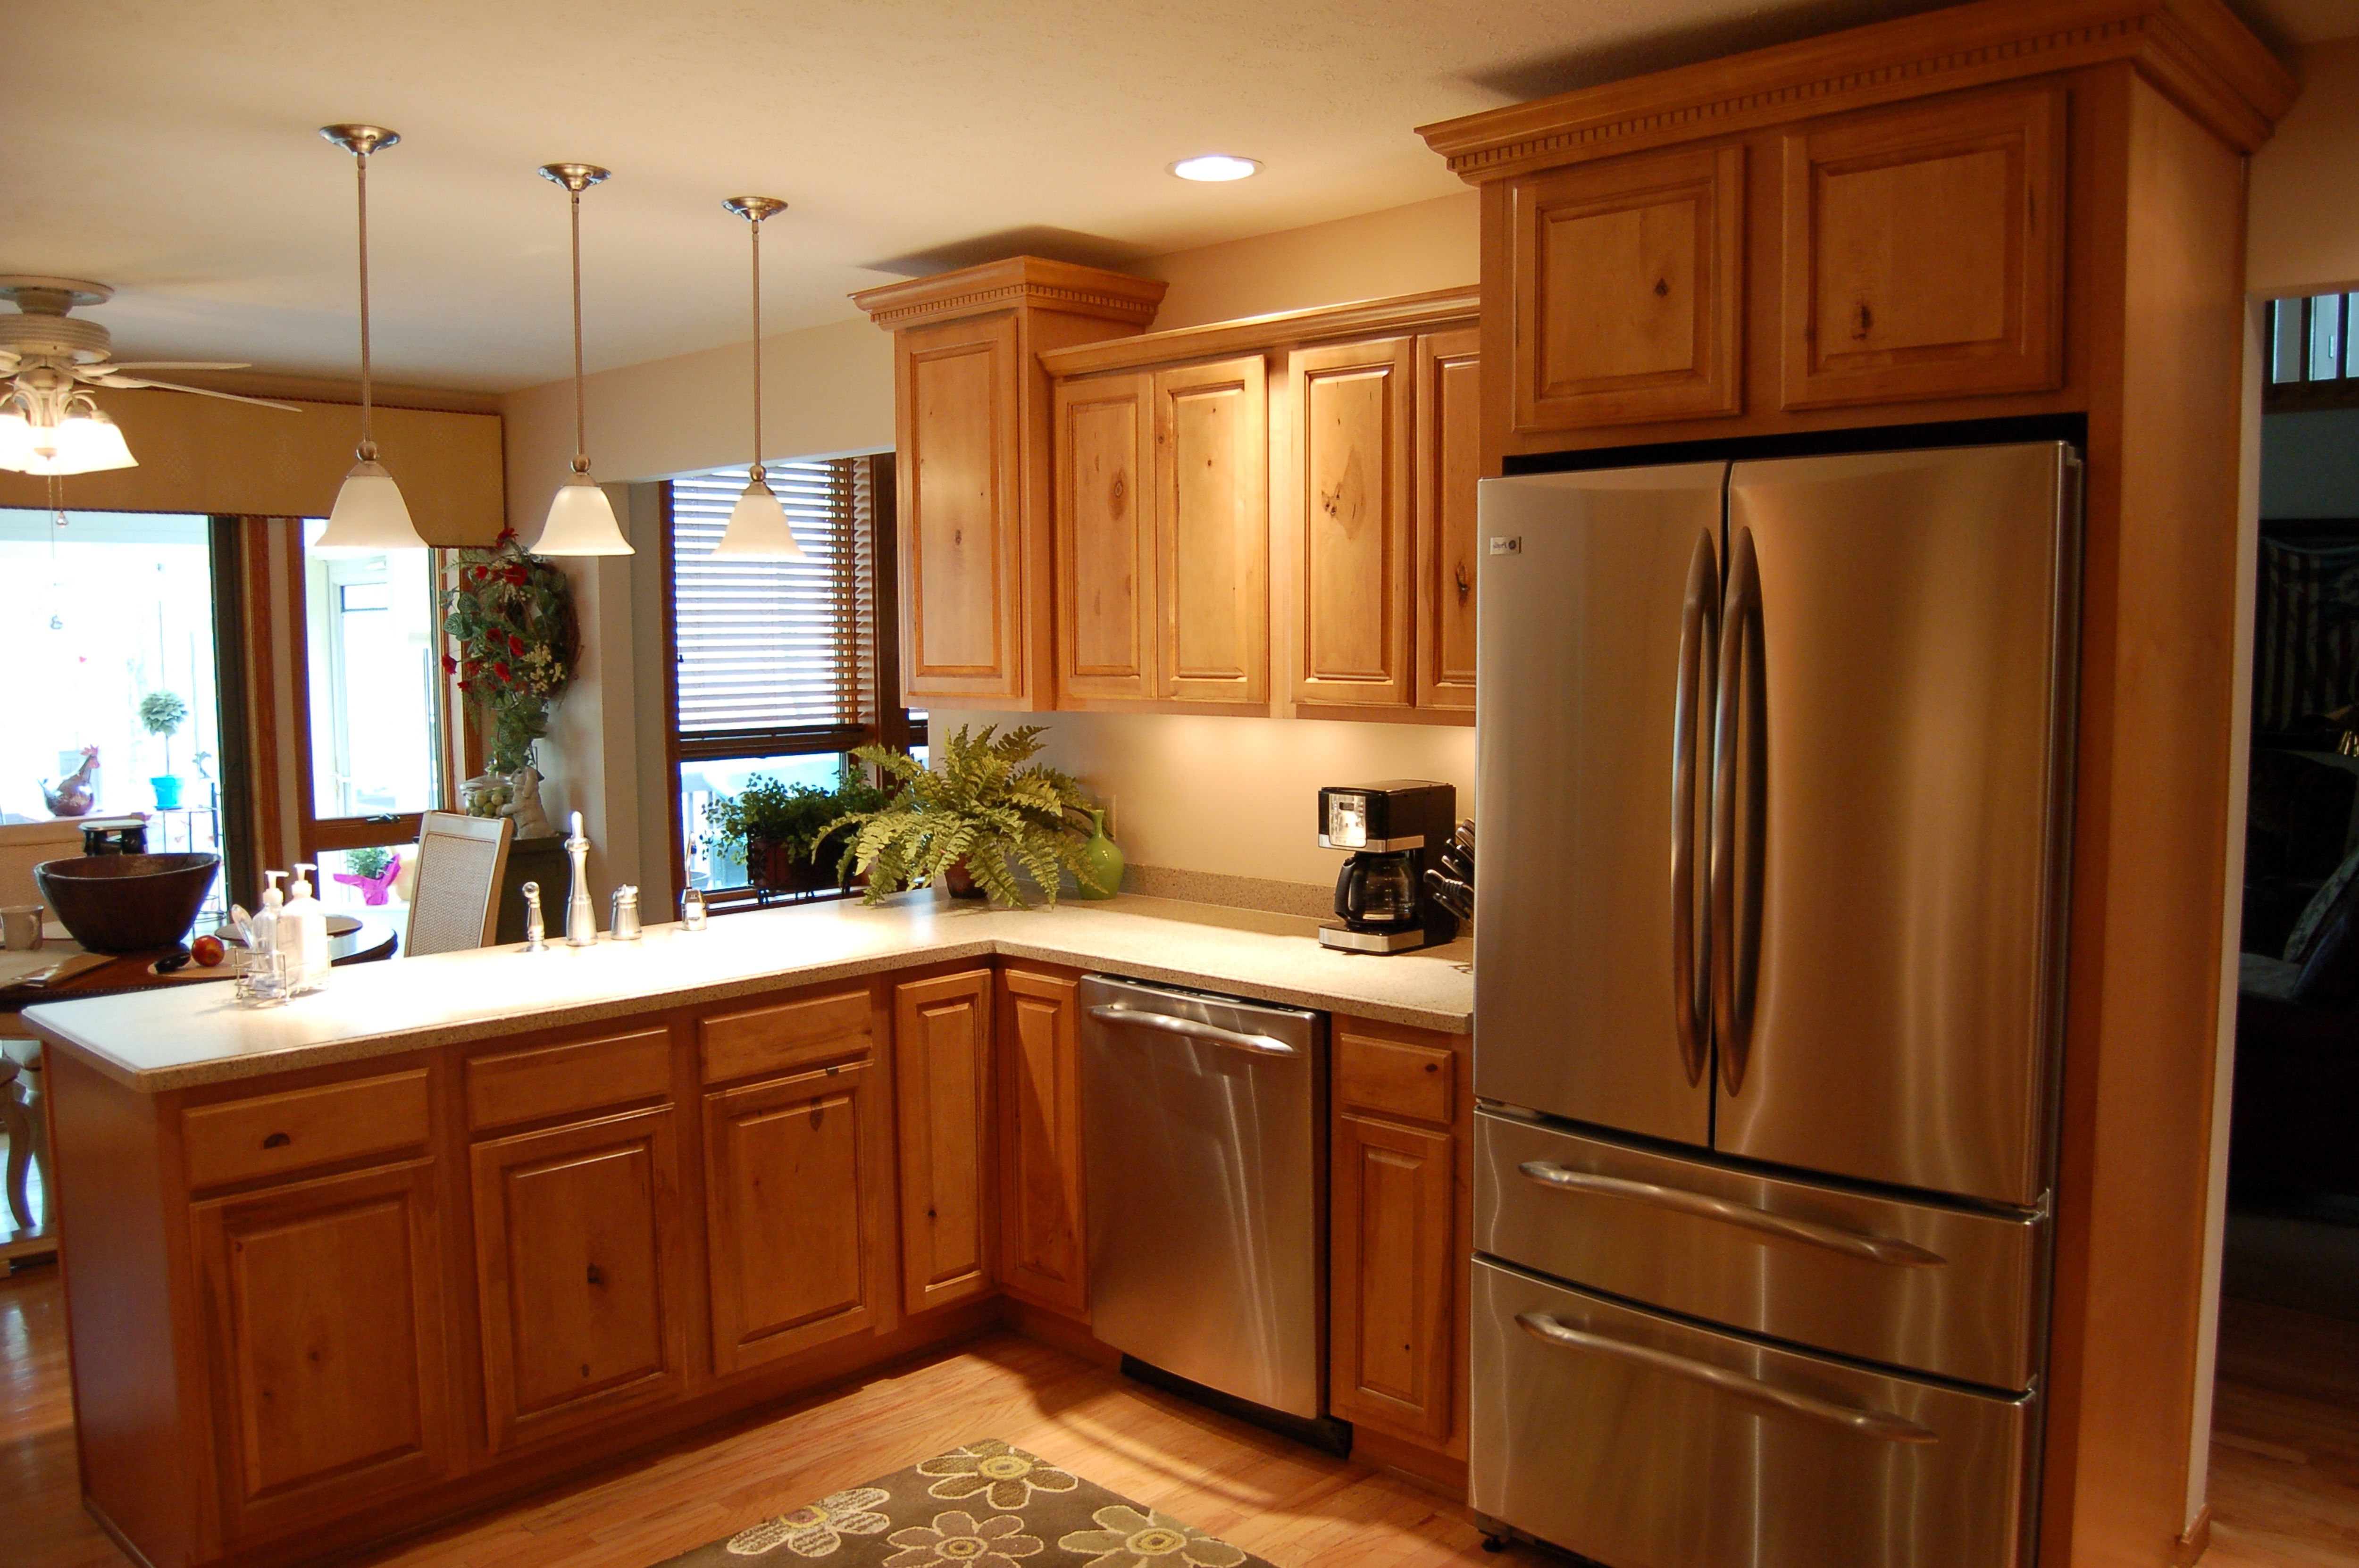 Brown Kitchen Interior Design photo - 8